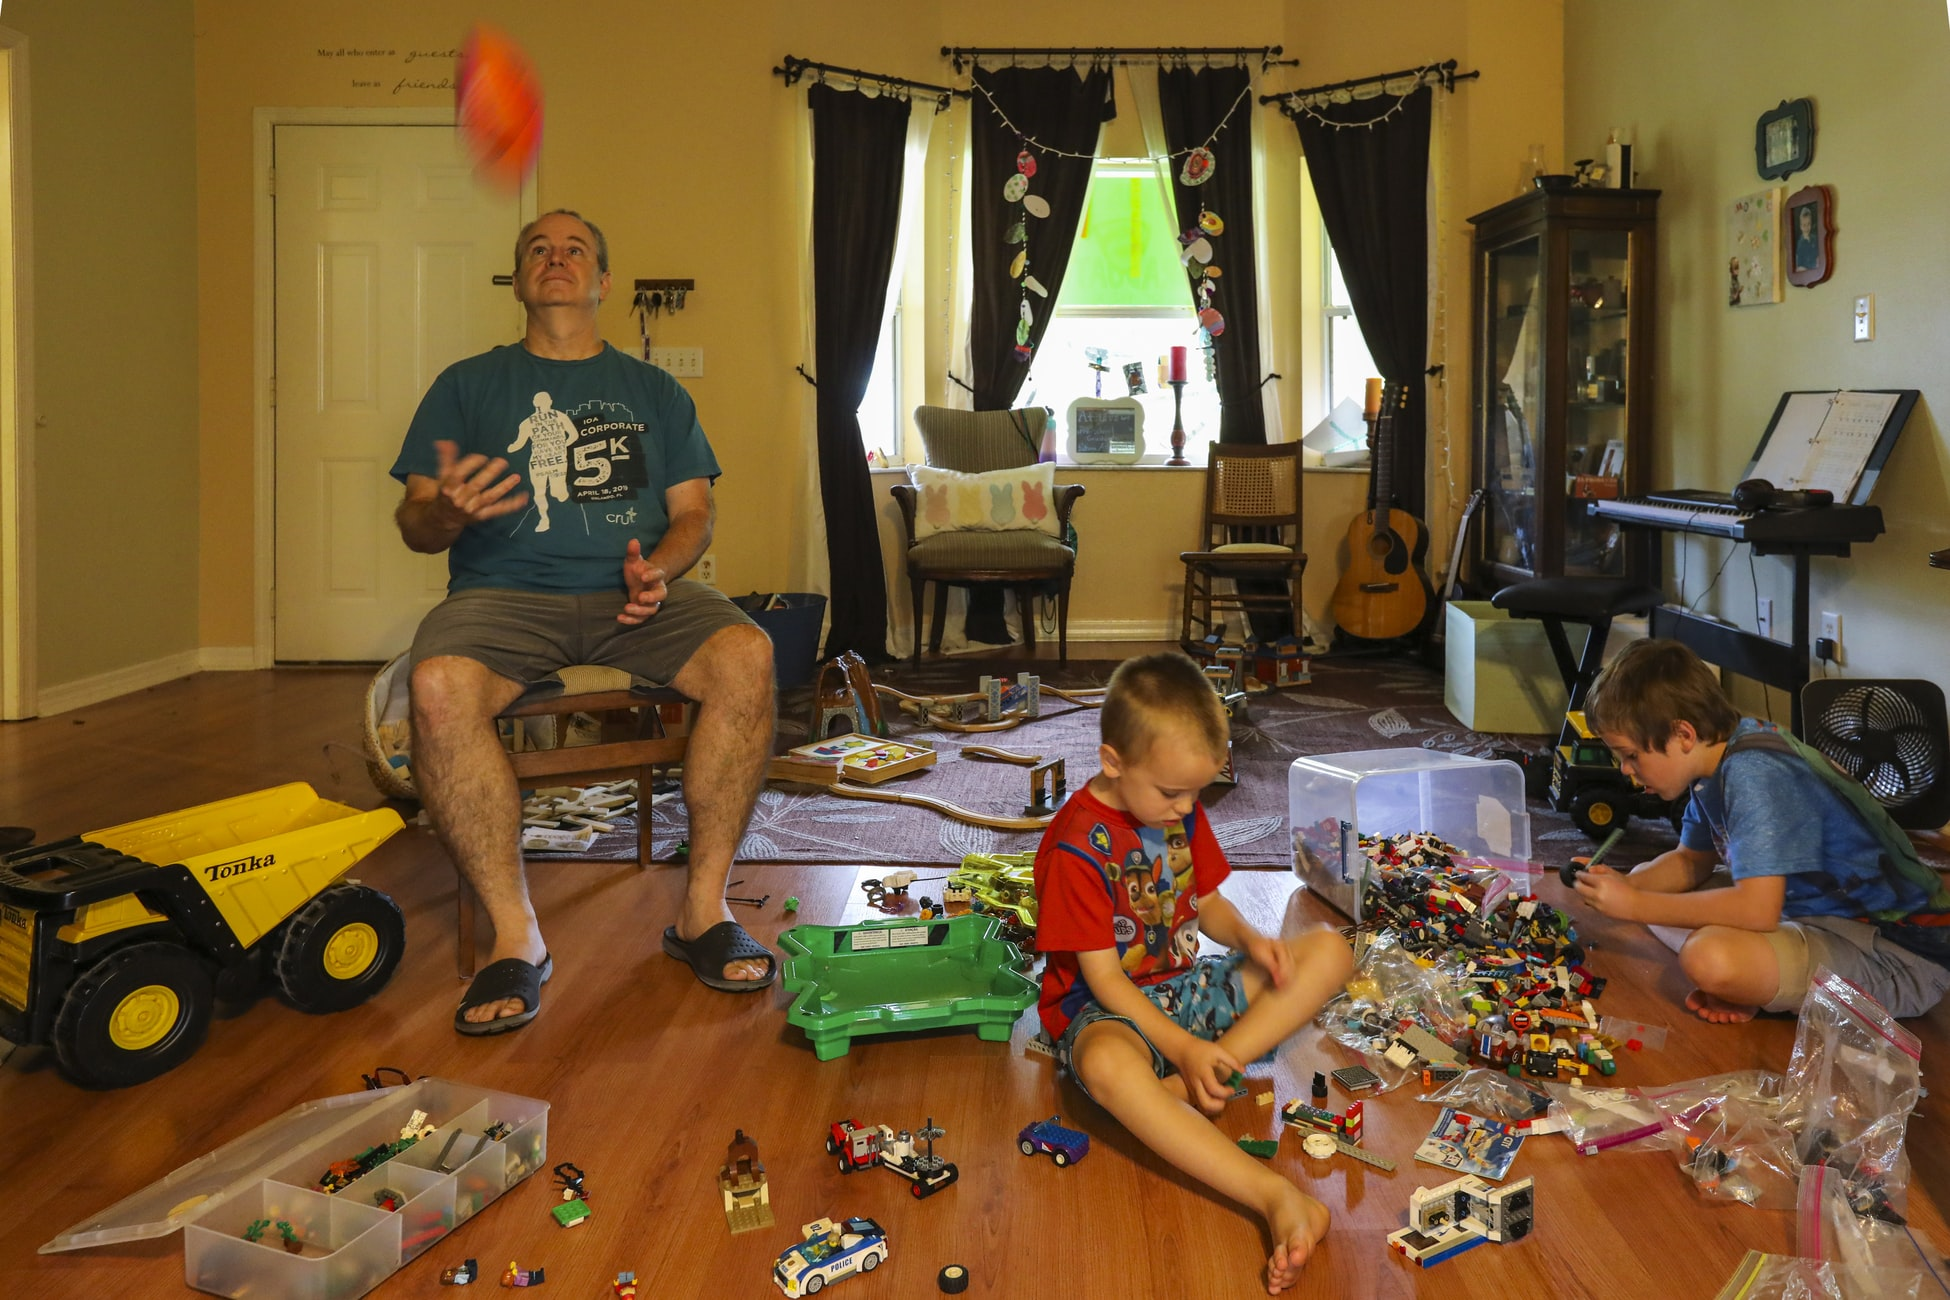 A Family Playing Let's Roam Indoor Scavenger Hunts